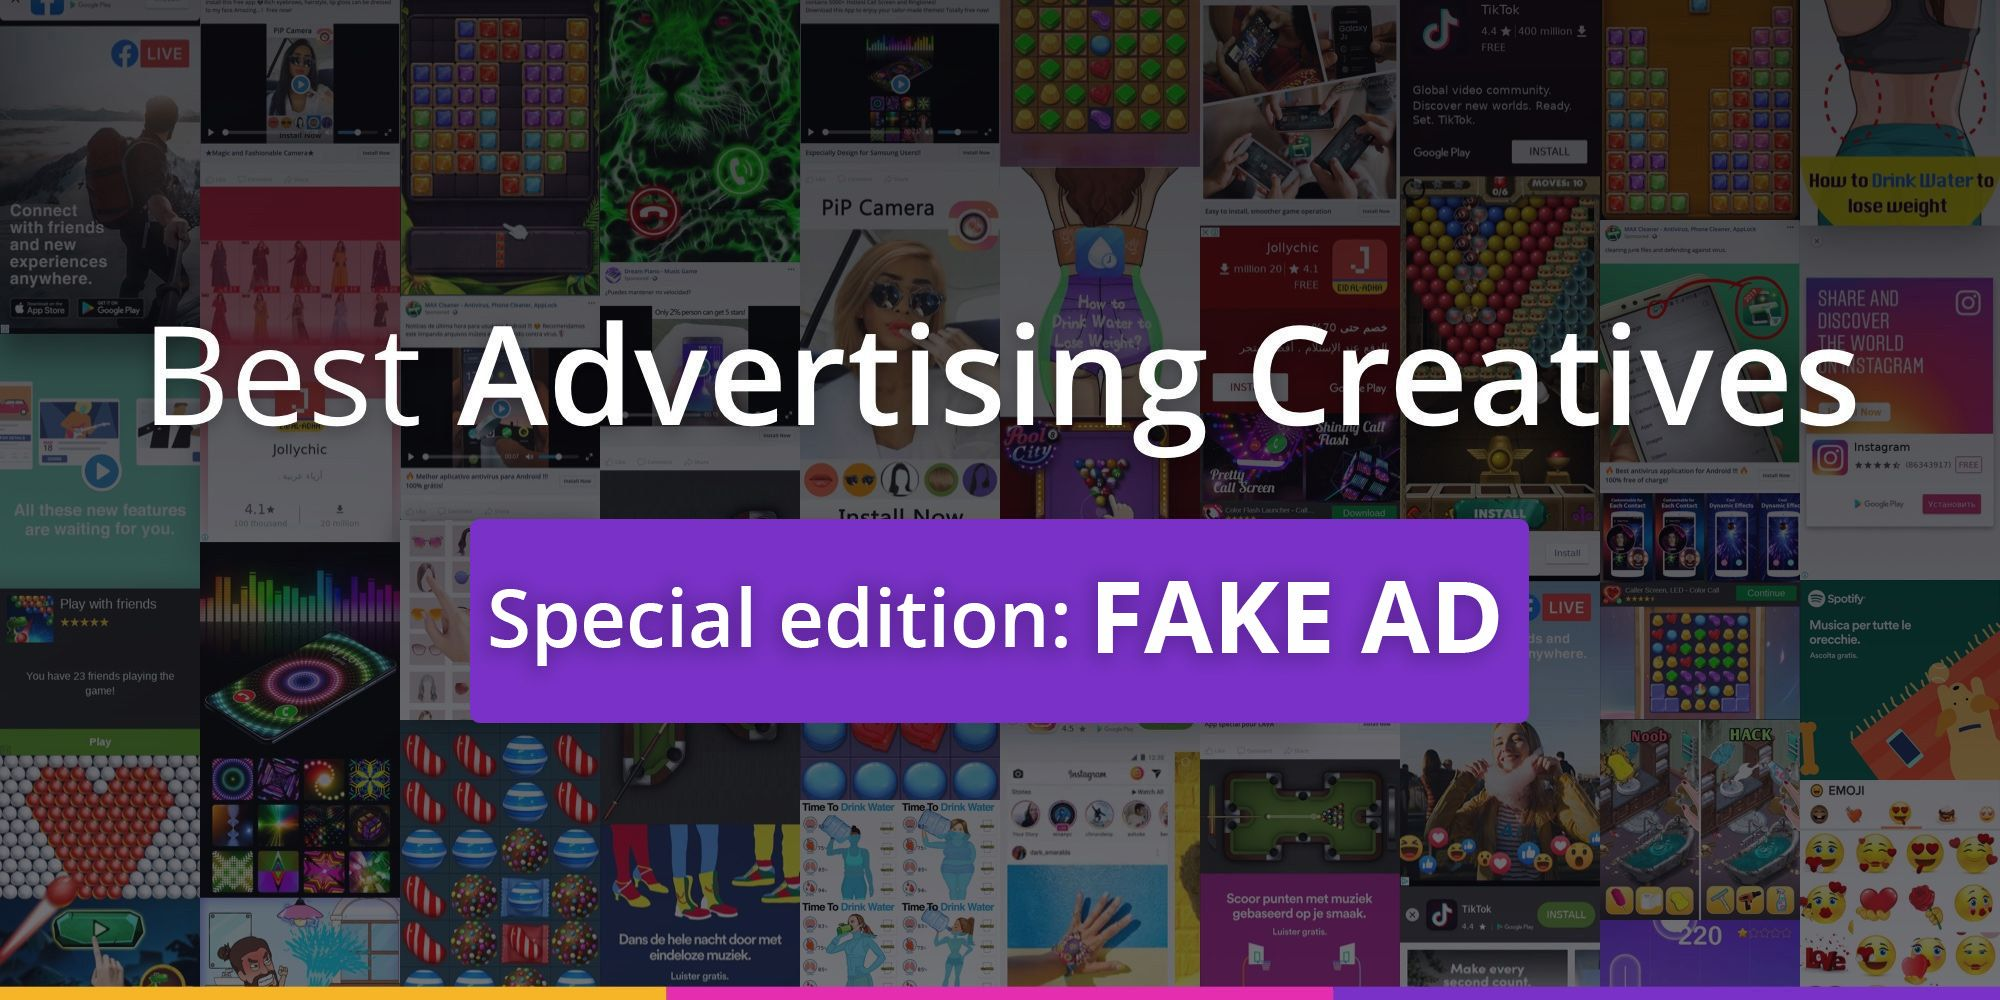 Best advertising creatives of November: Fake Ad